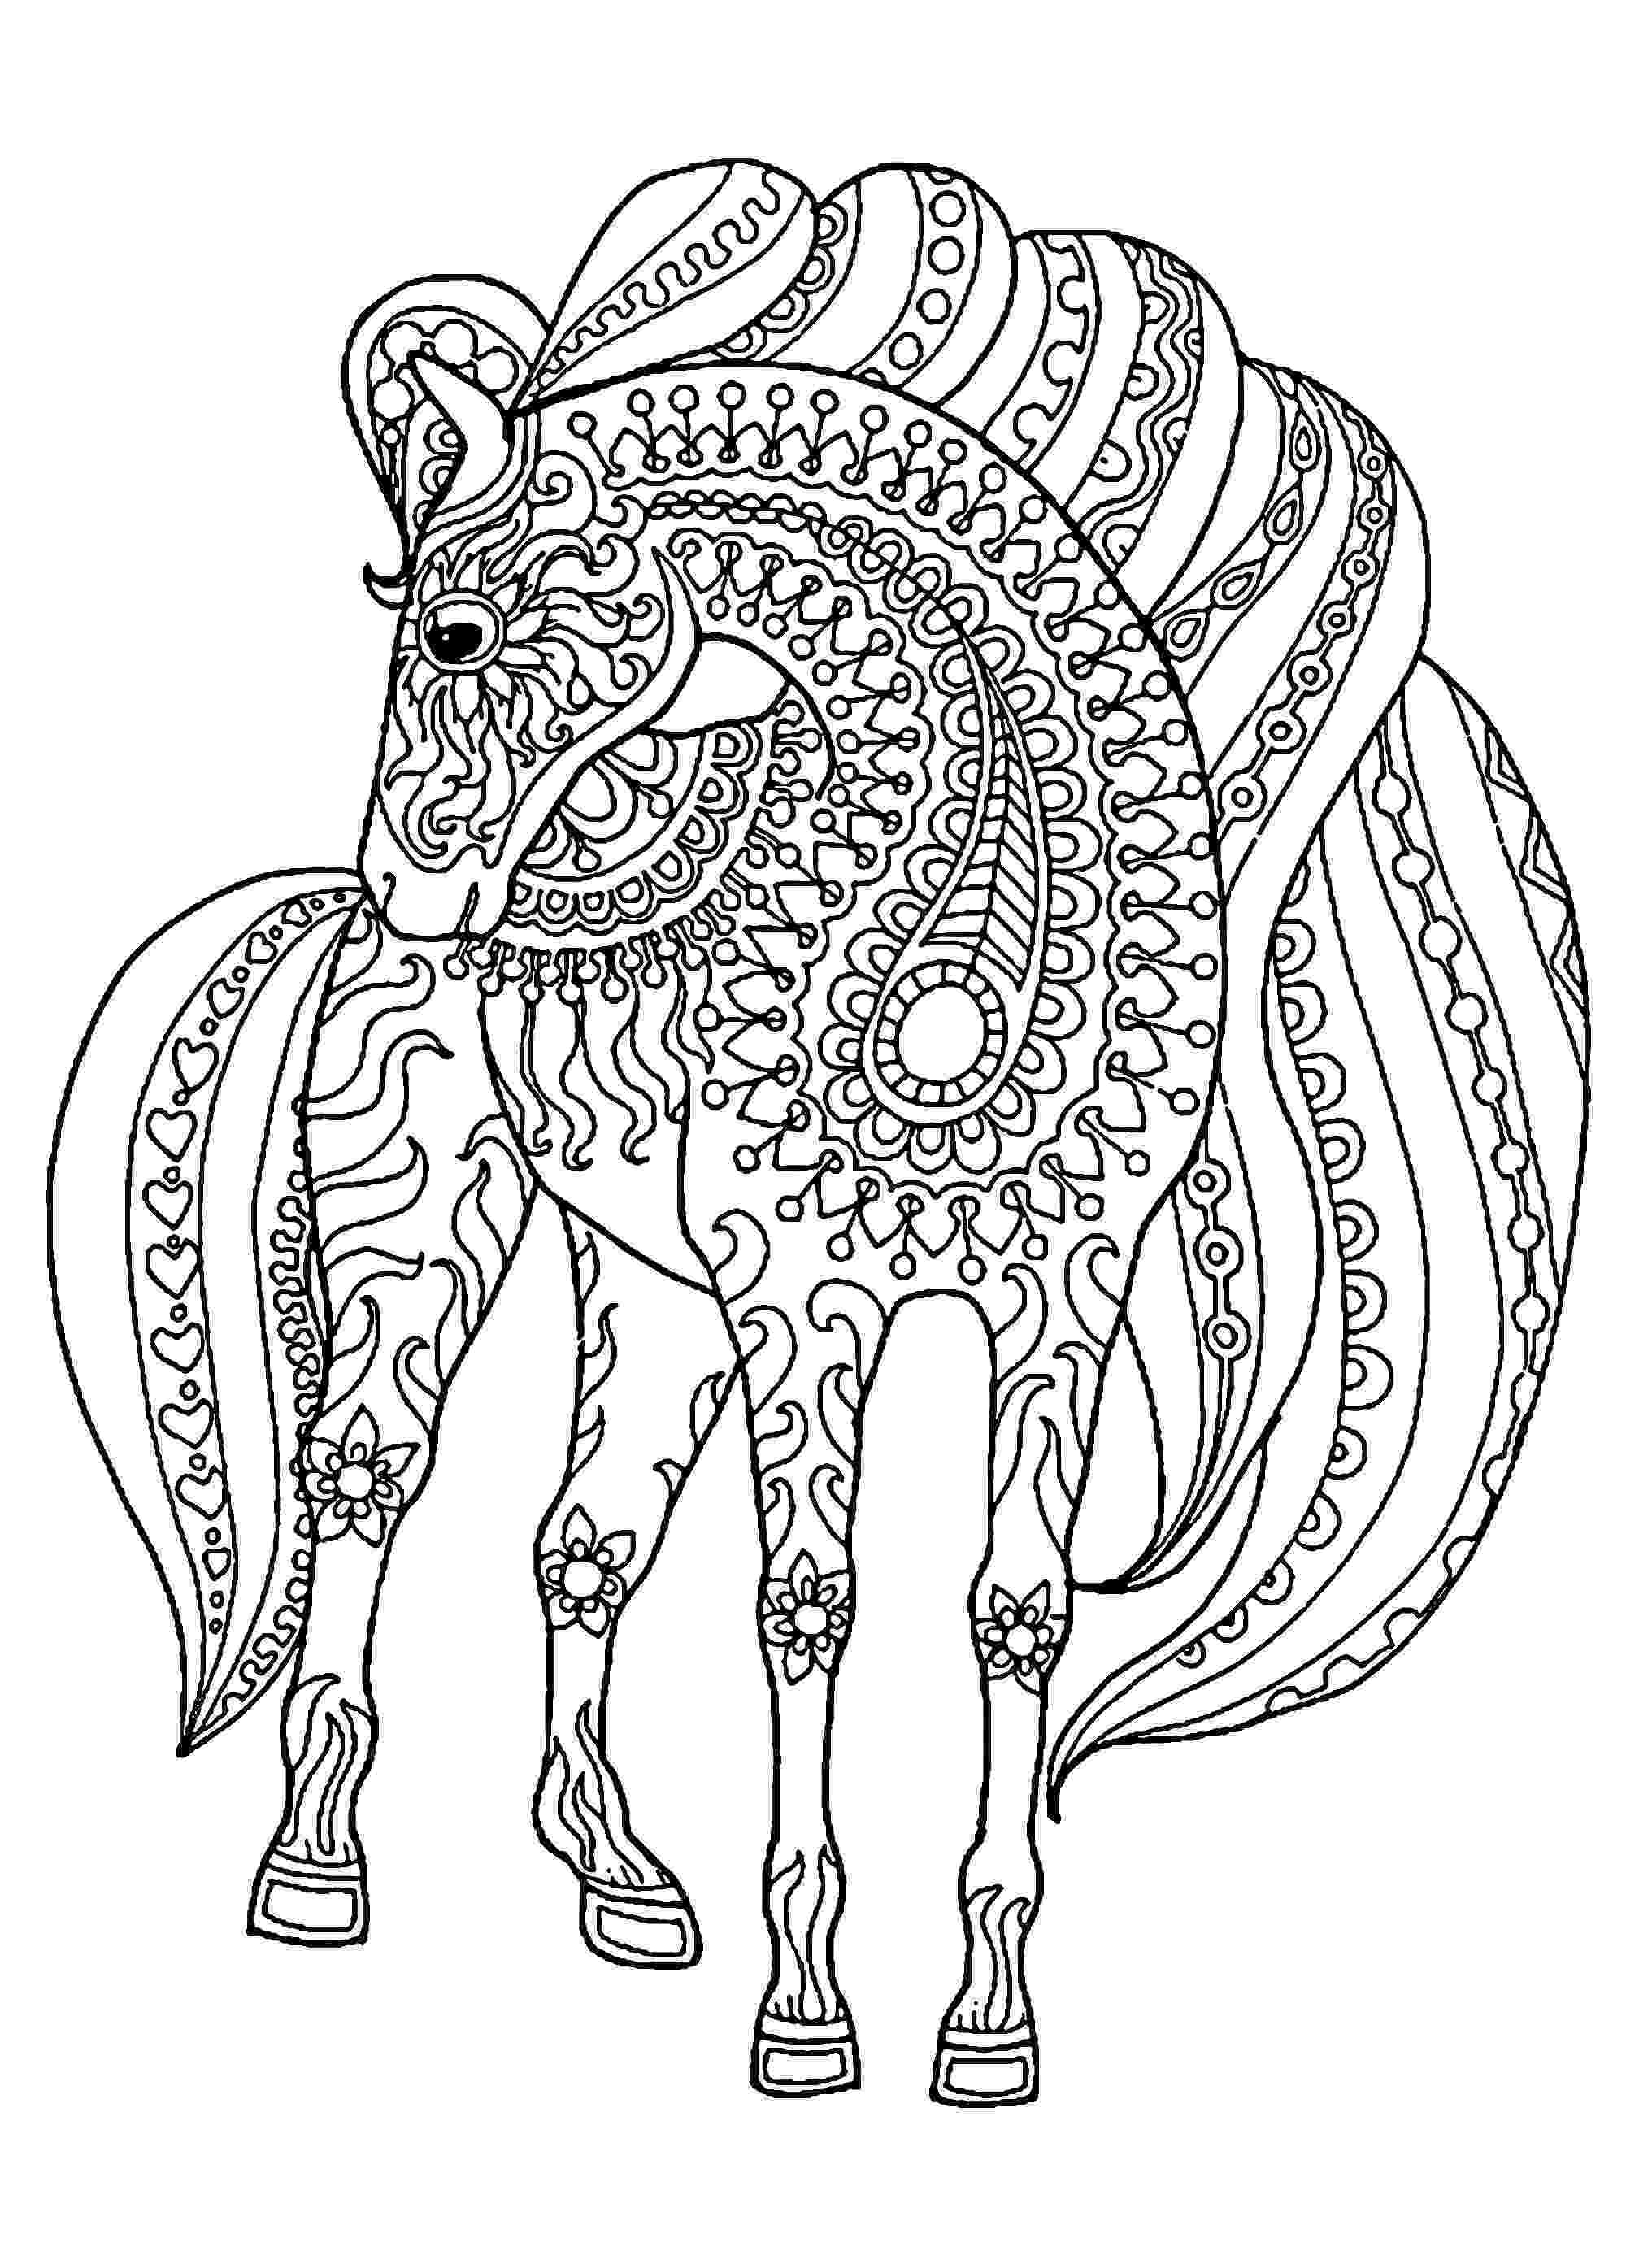 picture of horses to color 17 free printable horses coloring pages for kids gtgt disney horses of color picture to